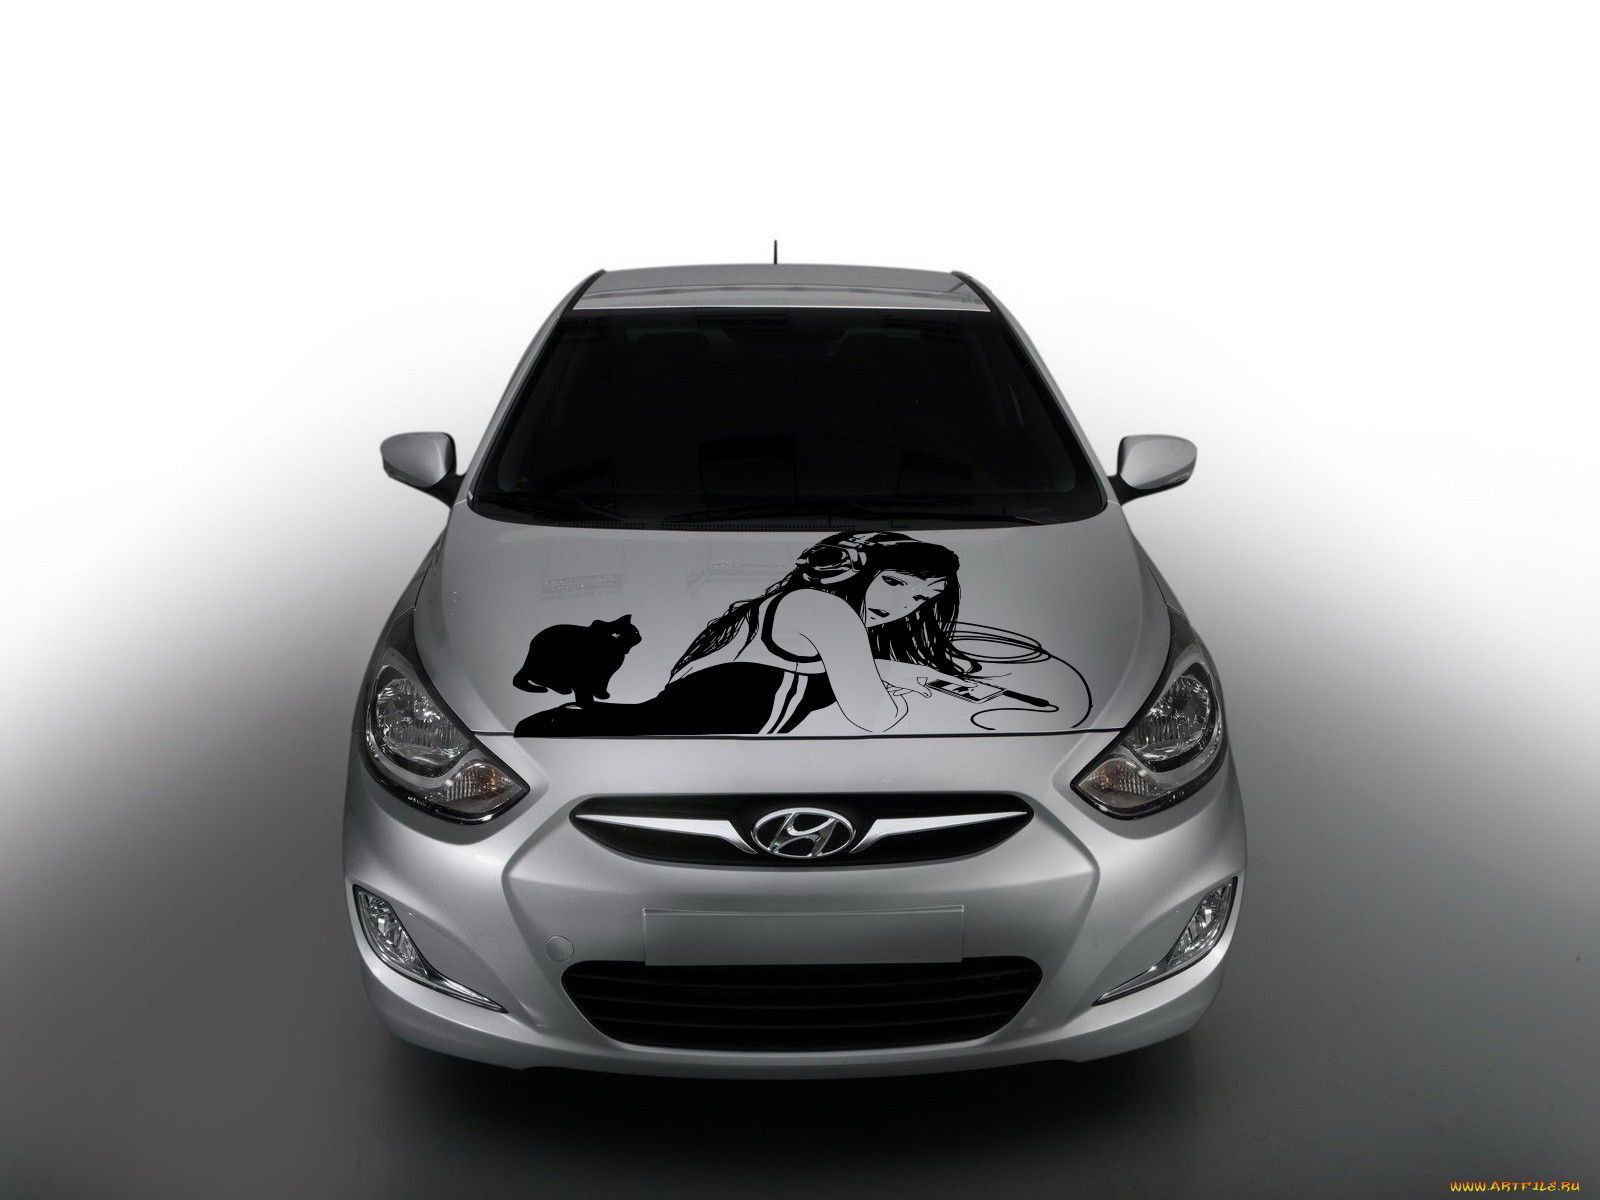 Anime Car Decal Car Decal Car Sticker Girl And Cat Car Vinyl Anime - Car decal sticker girl